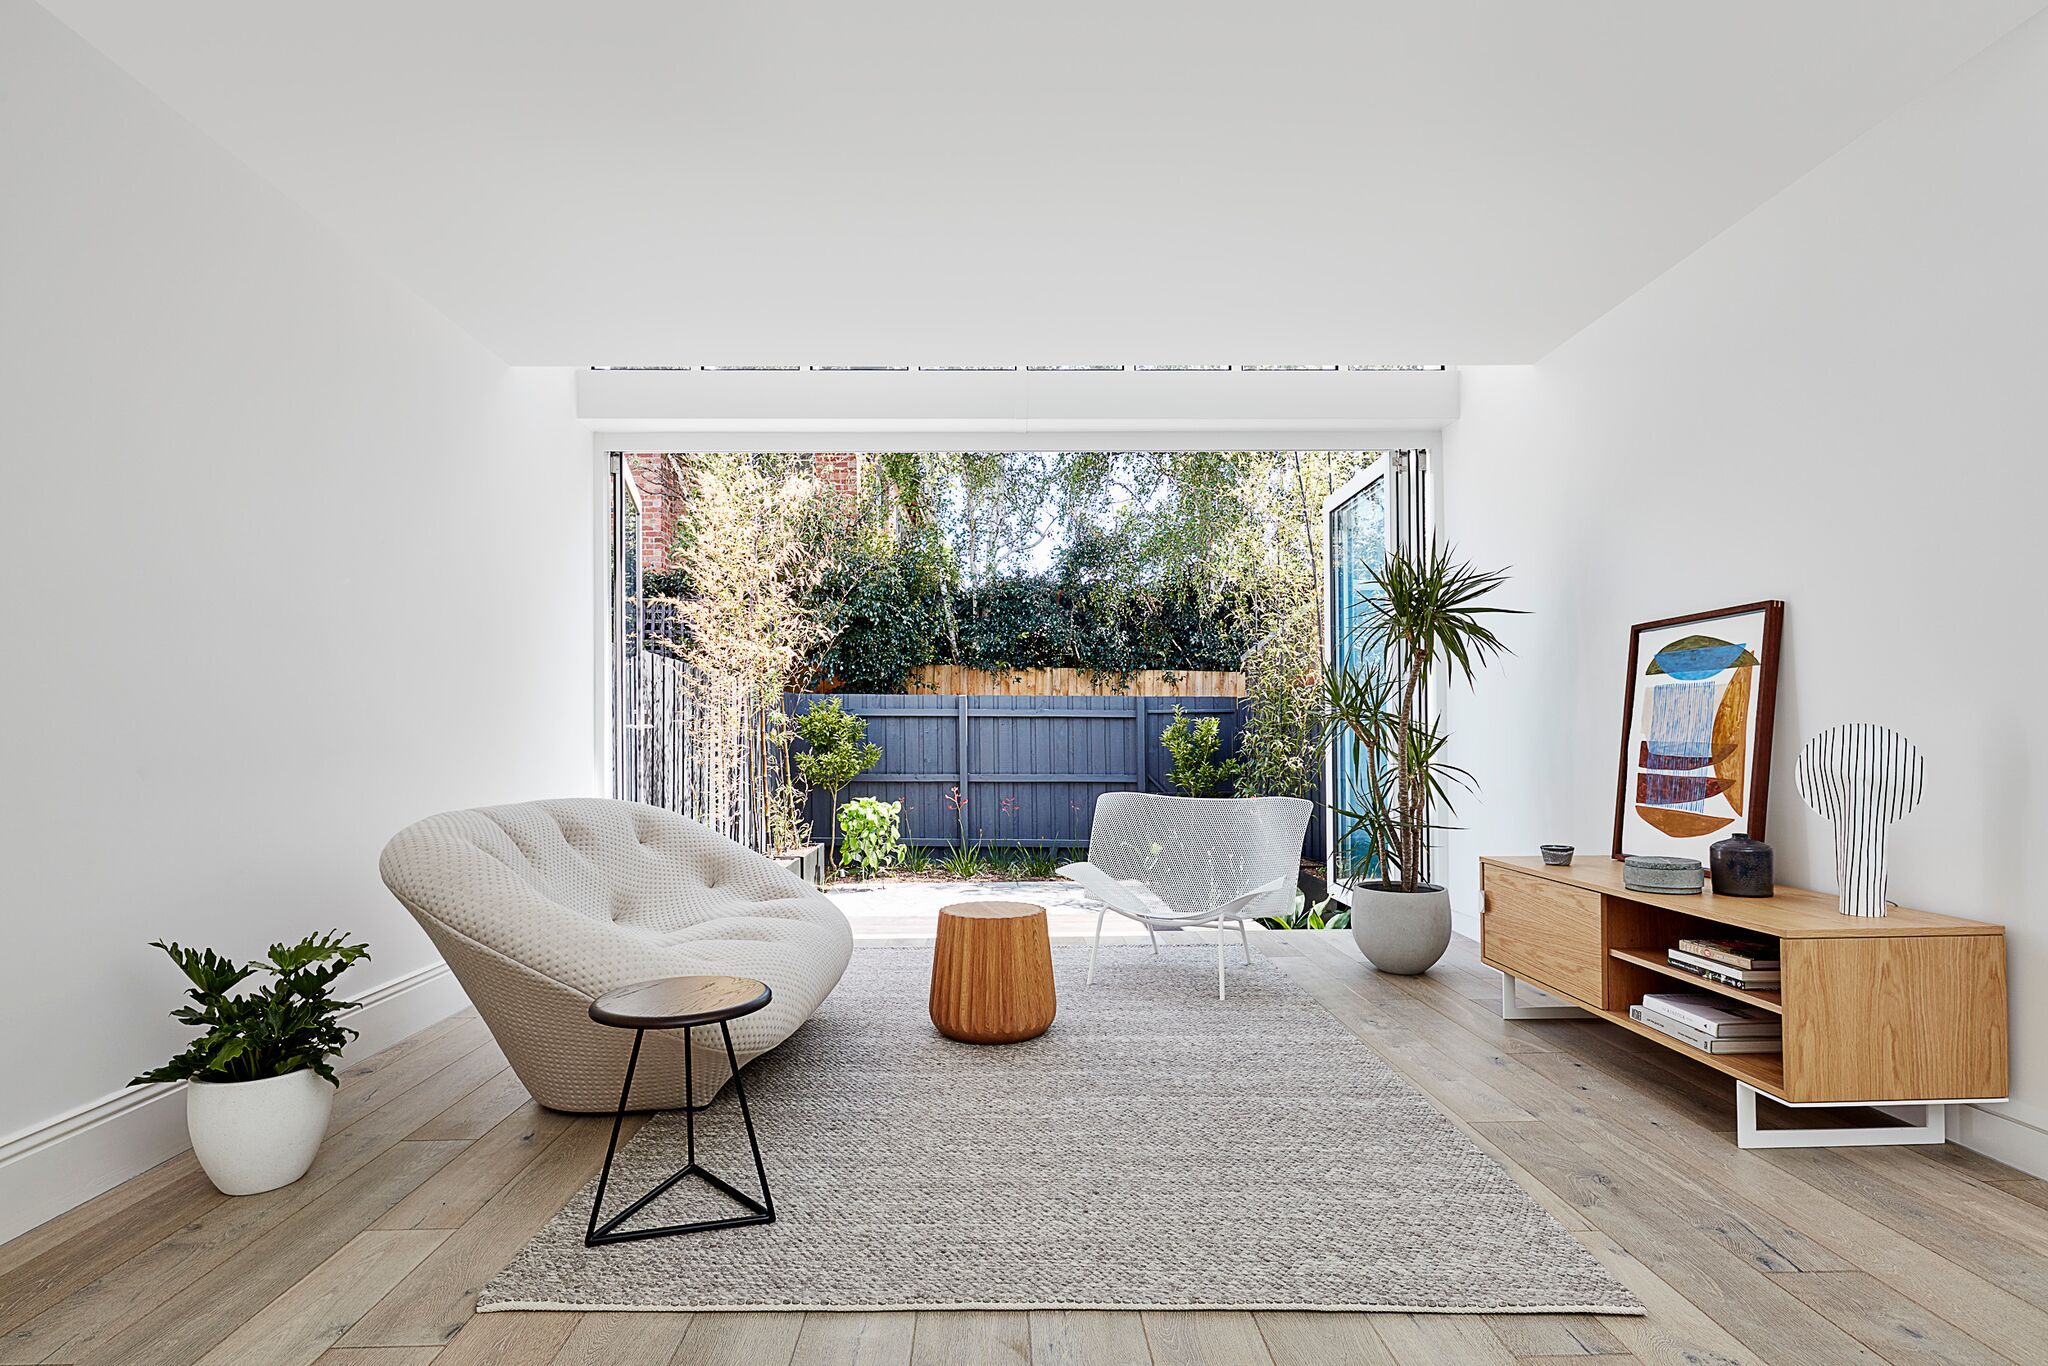 Gallery Of Oban Street By Mittelman Amsellem Architects Local Australian Design & Interiors South Yarra, Melbourne Image 8